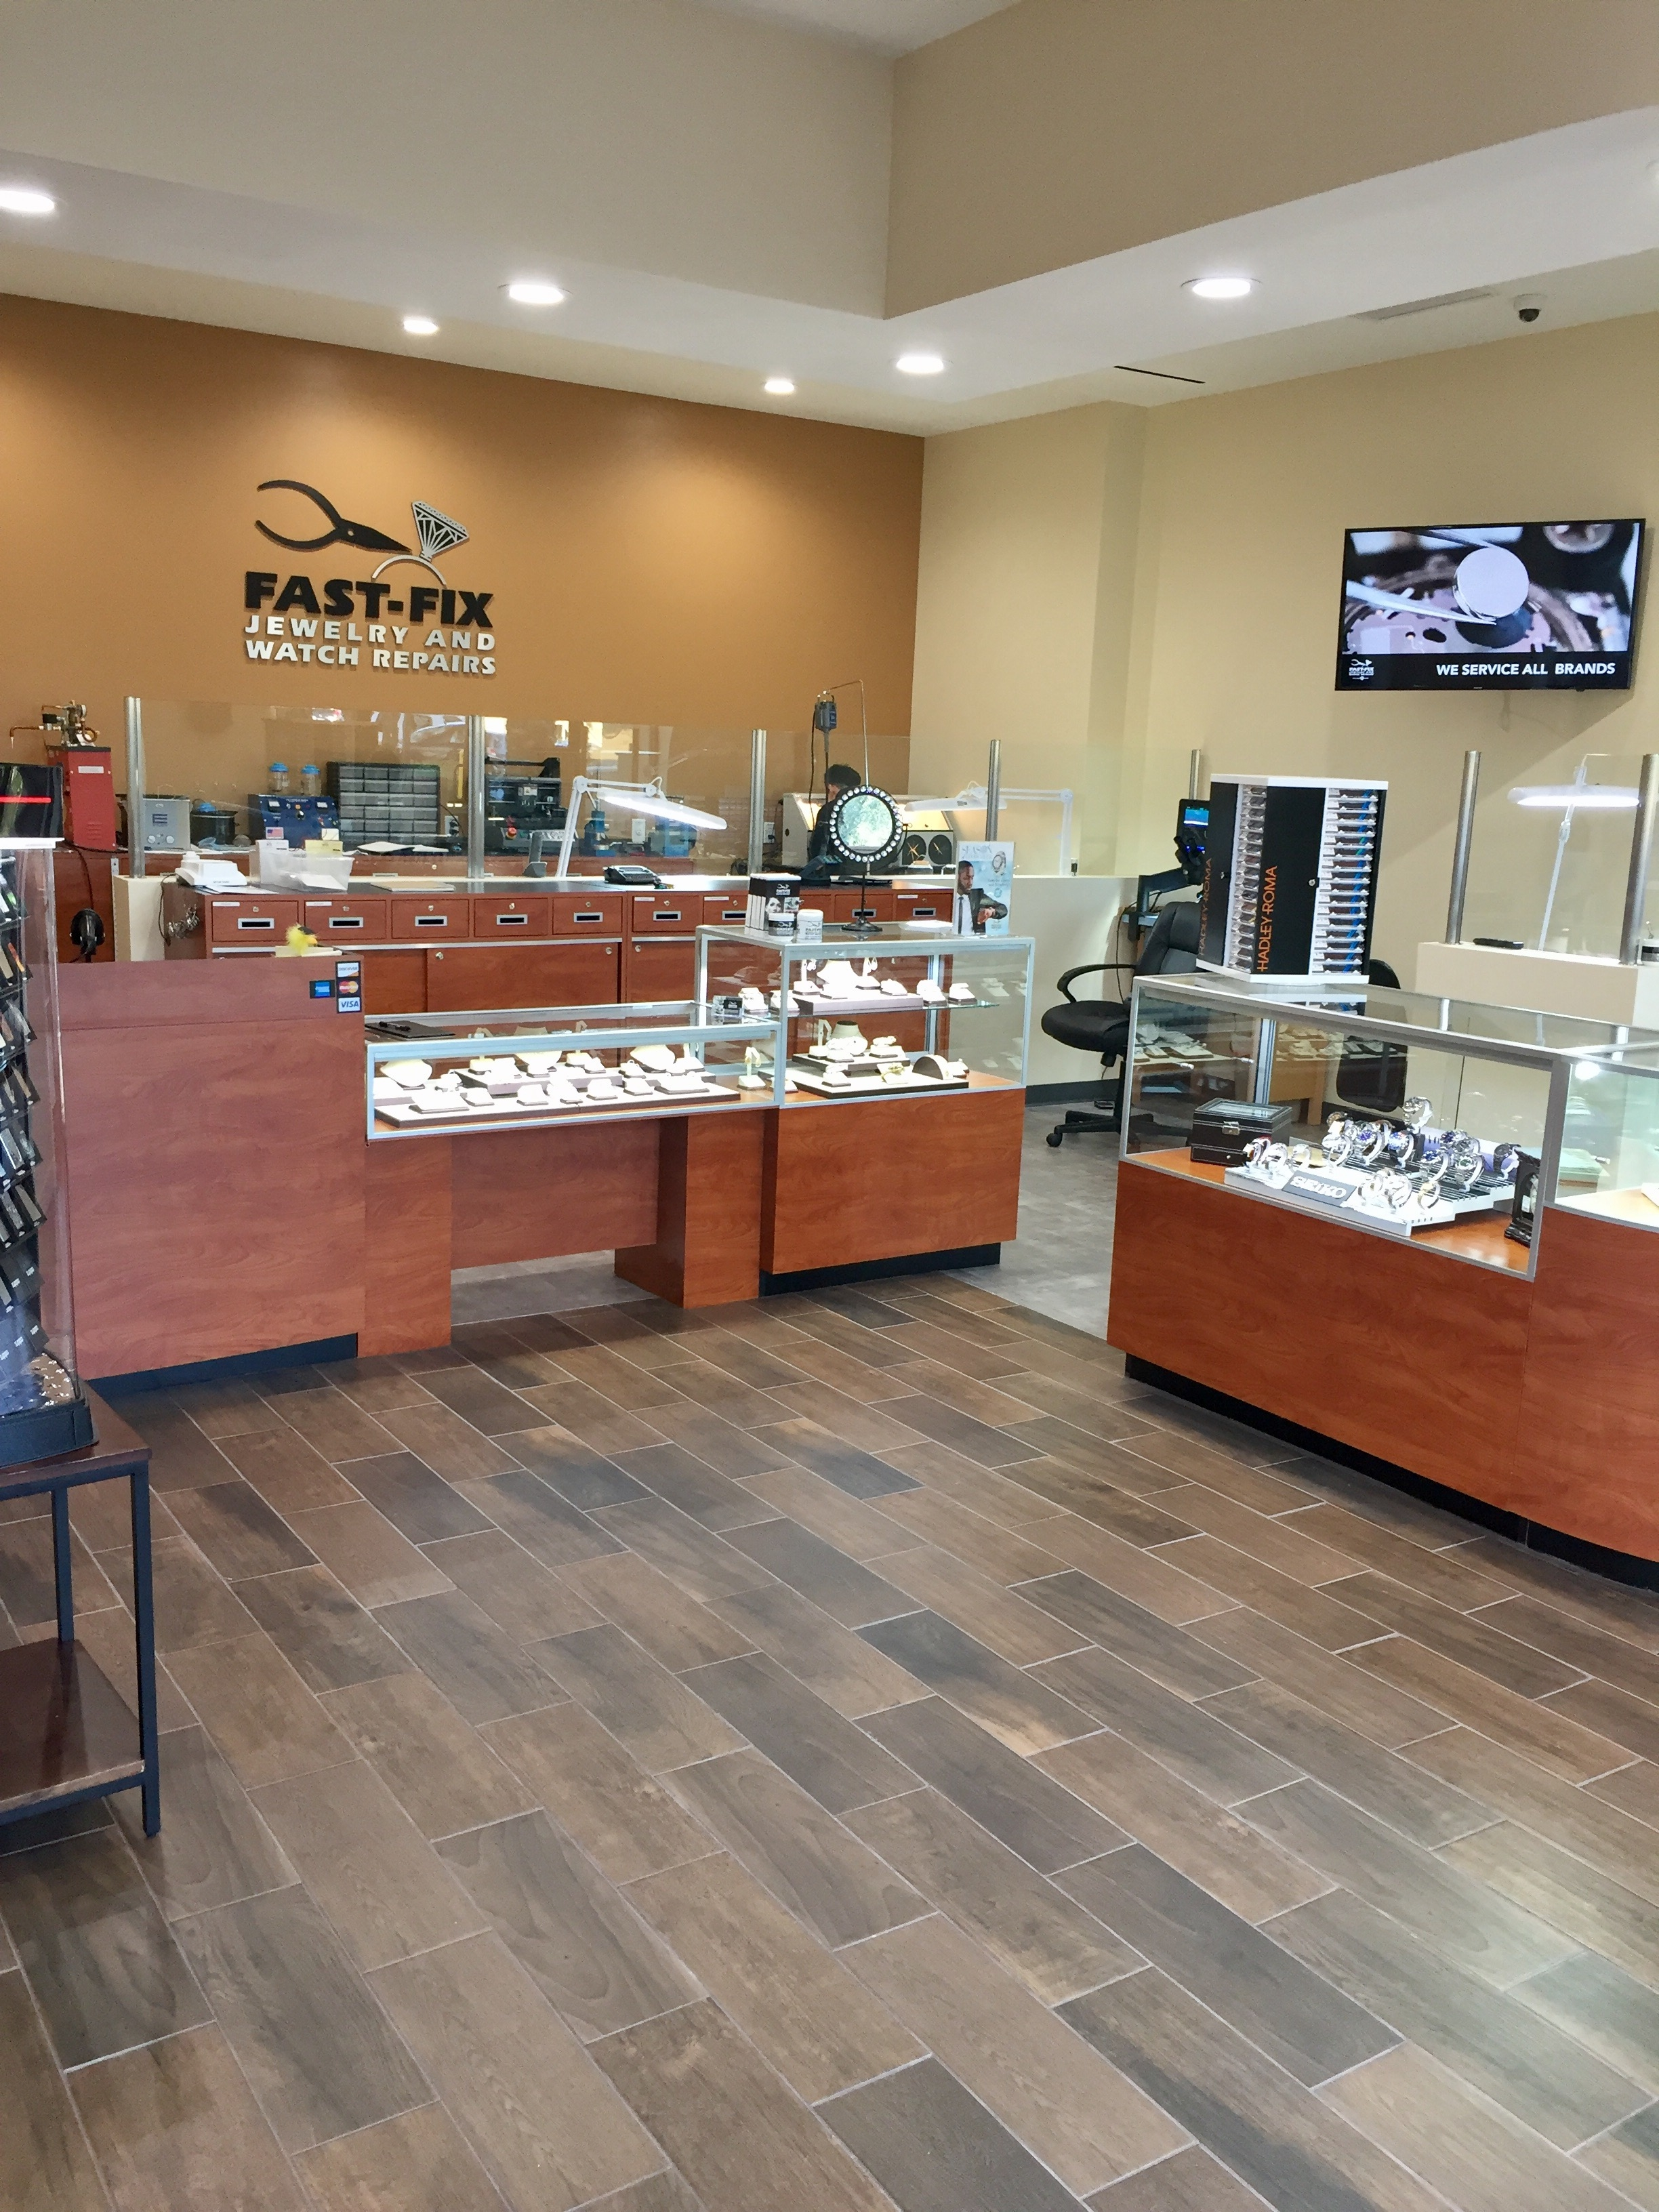 Fast fix jewelry watch repairs irvine coupons near me for Local jewelry stores near me